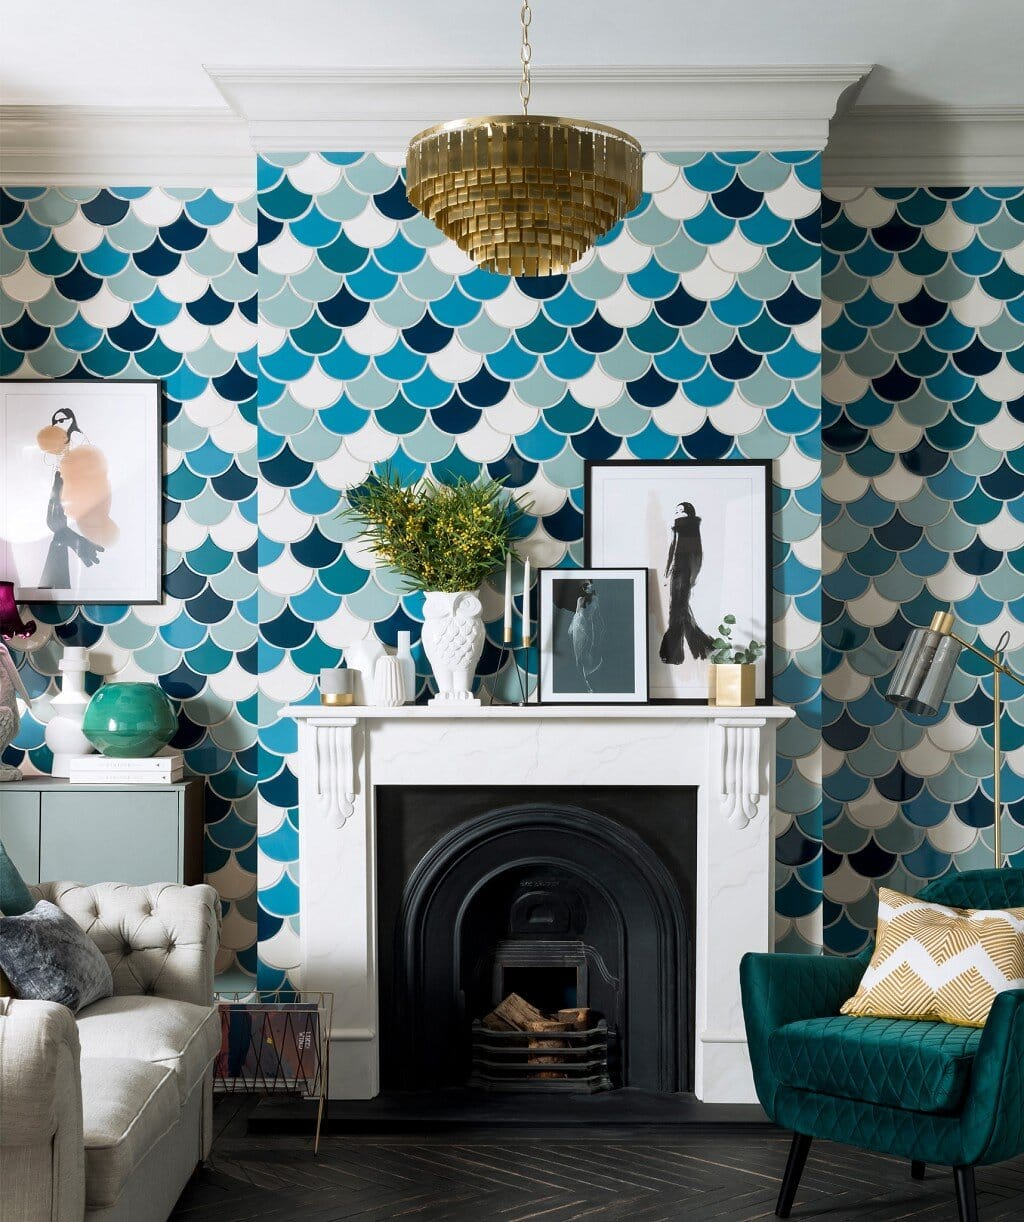 Using the Syren tiles around the fireplace in the living room, unusual but it kind of works! Credit: Topps Tiles